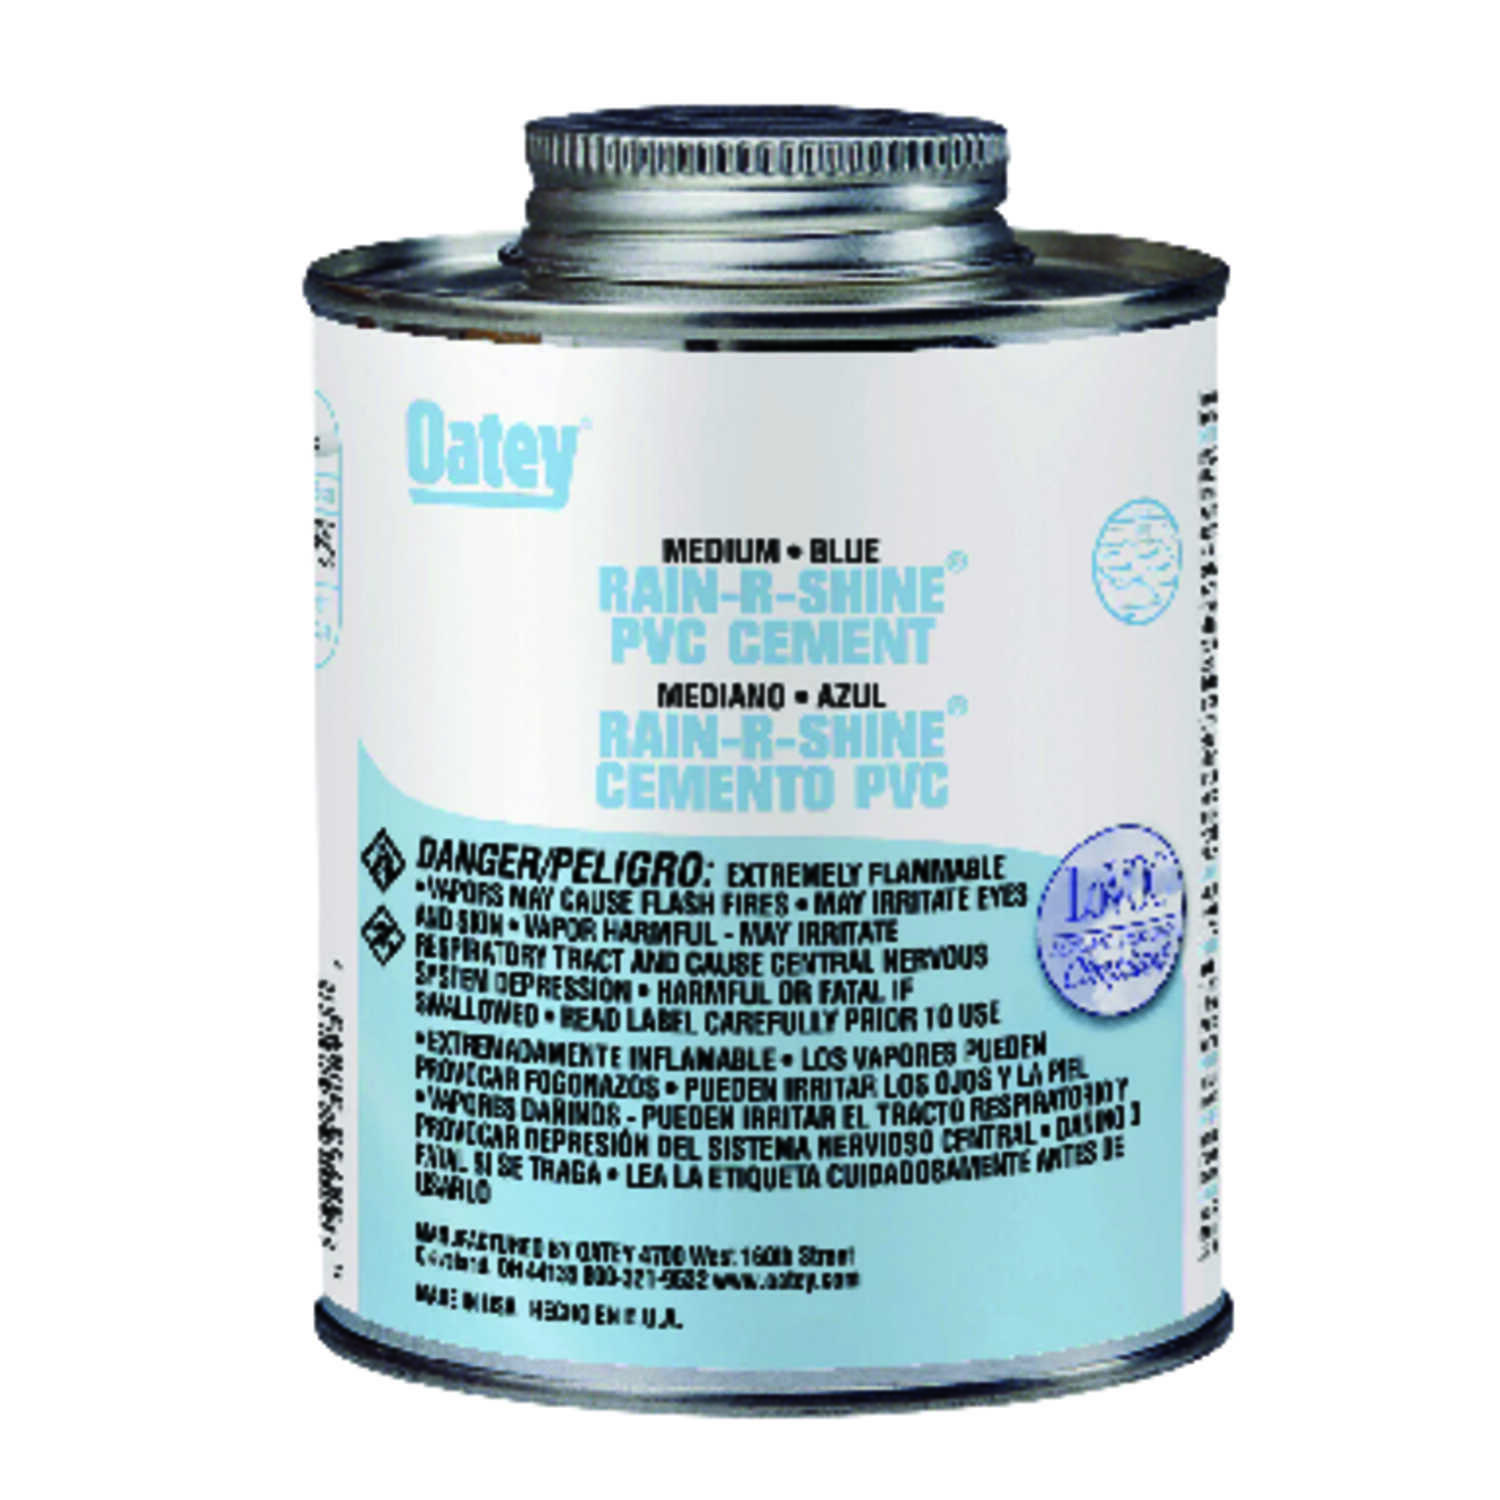 Oatey  Rain-R-Shine  Blue  Cement  4 oz. For PVC